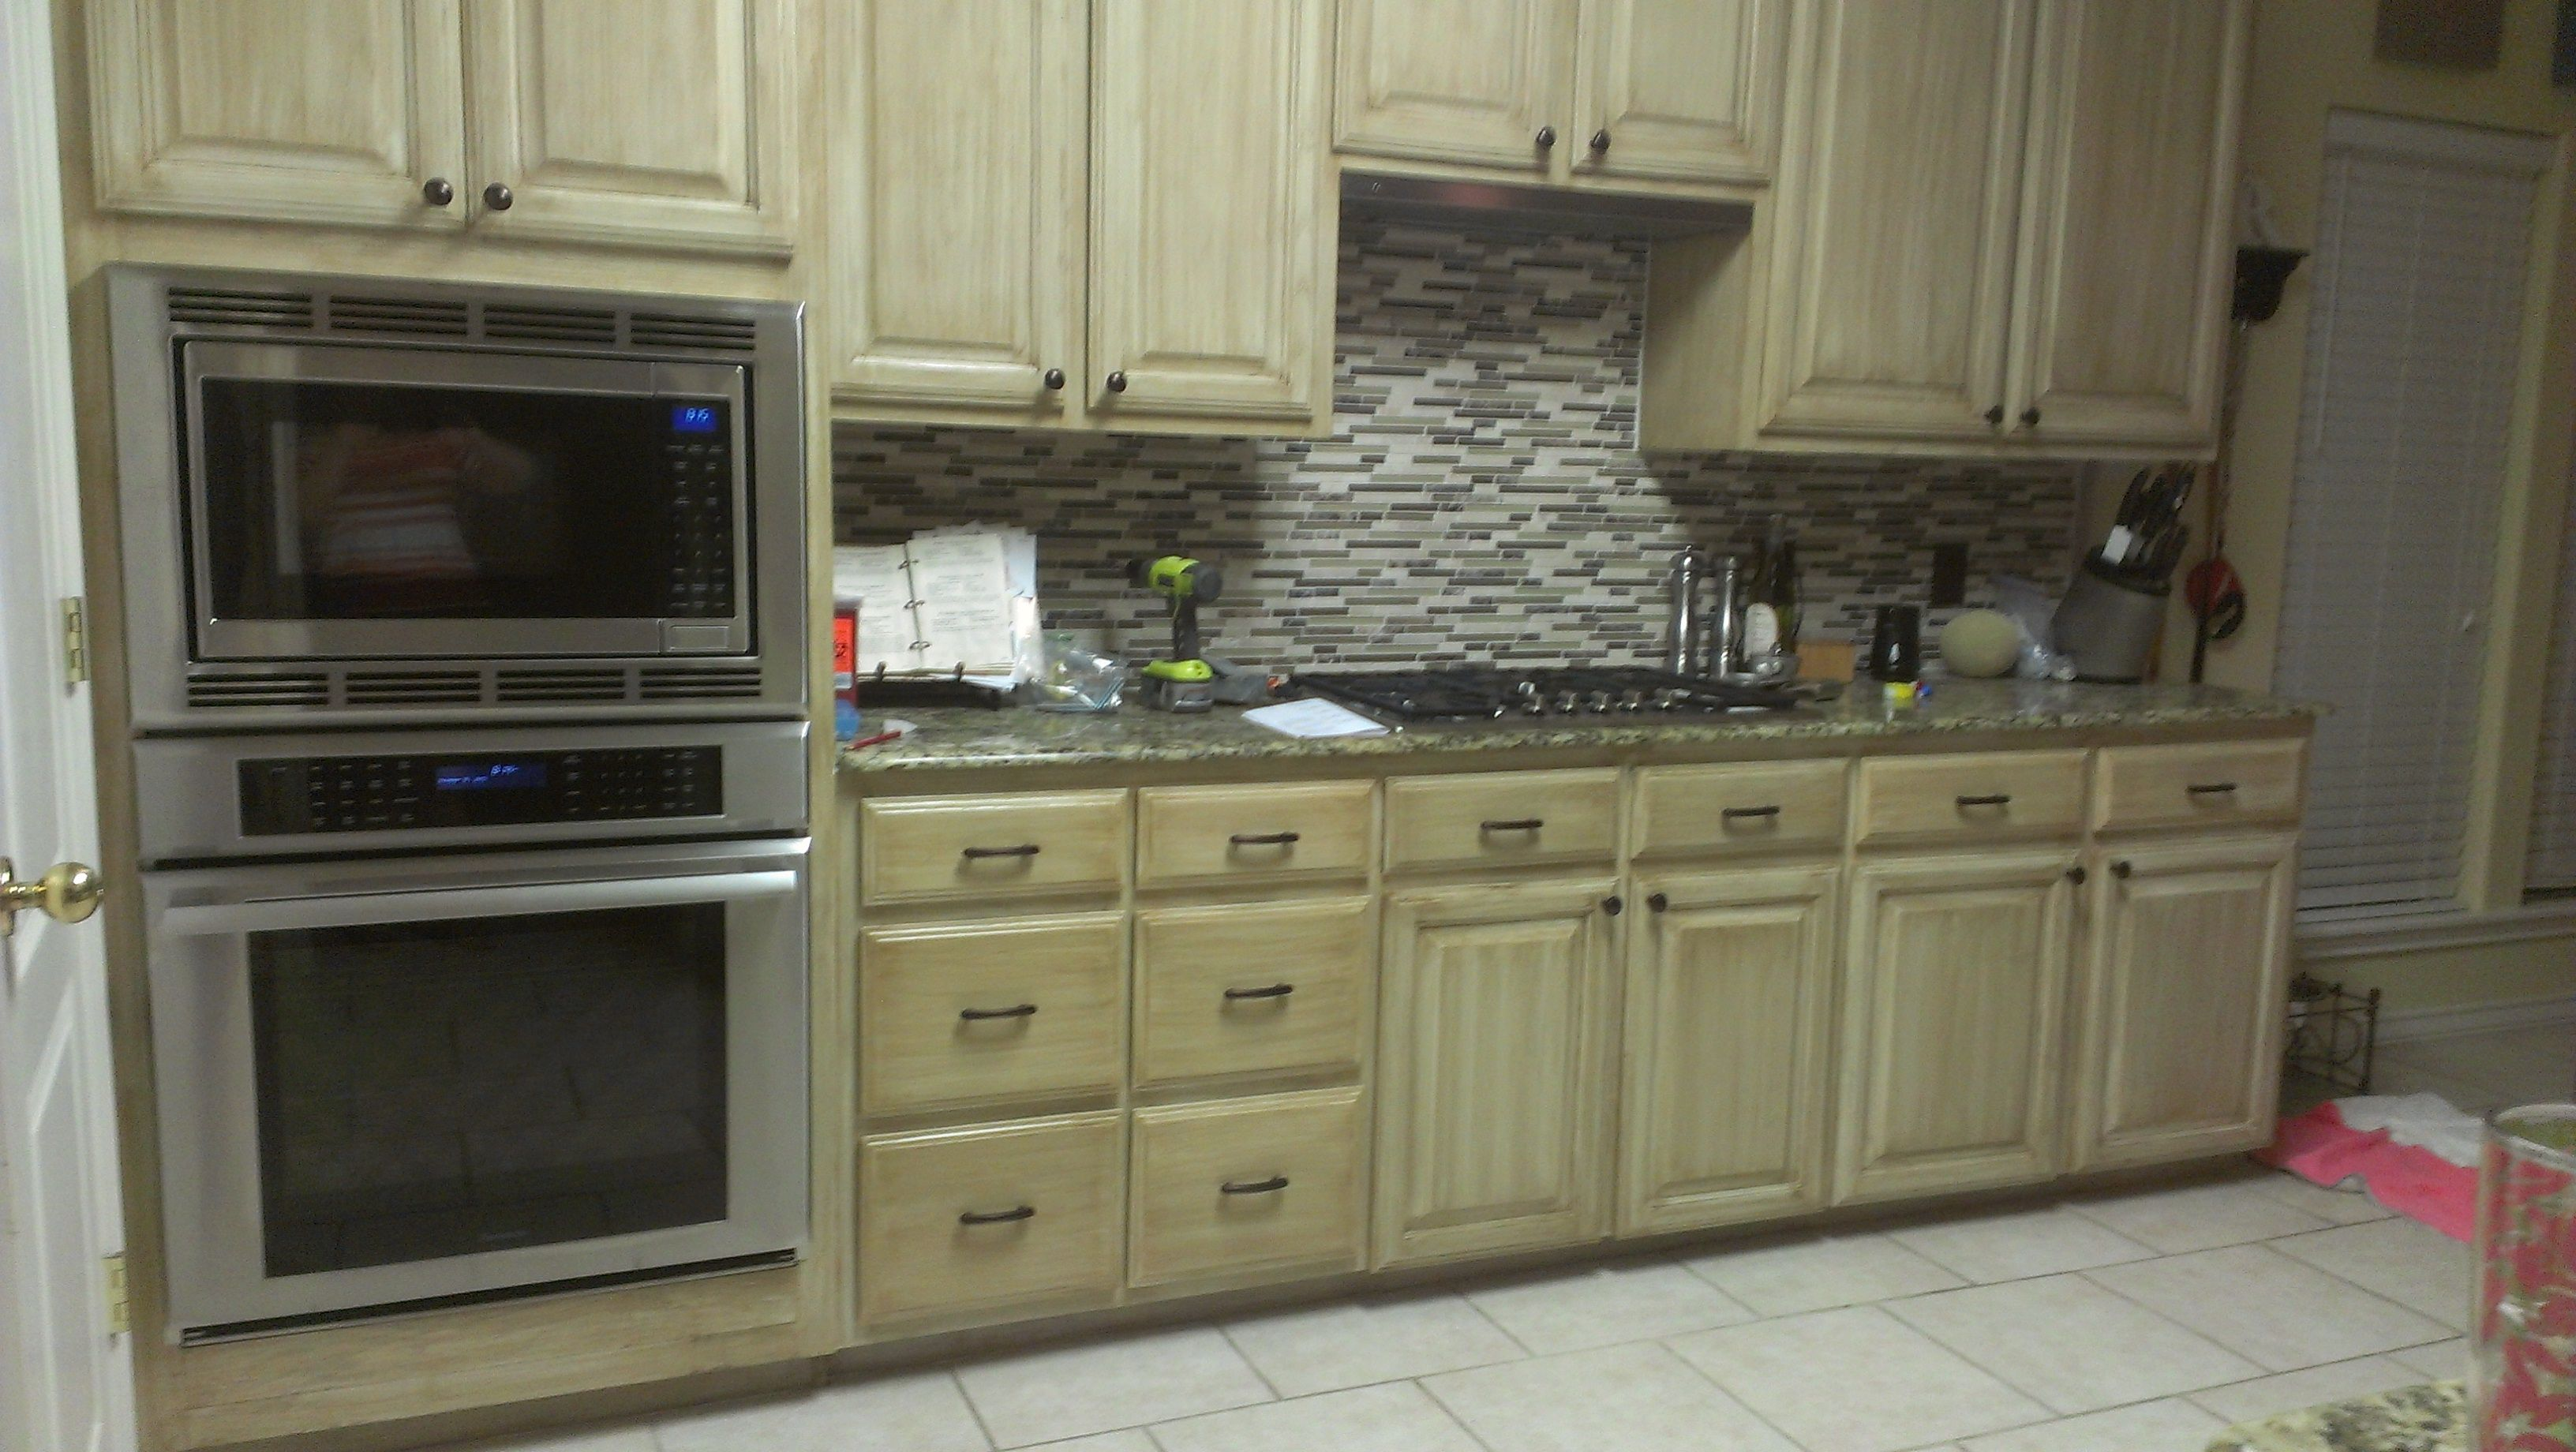 The Kitchen Final We Used Rustoleum Cabinet